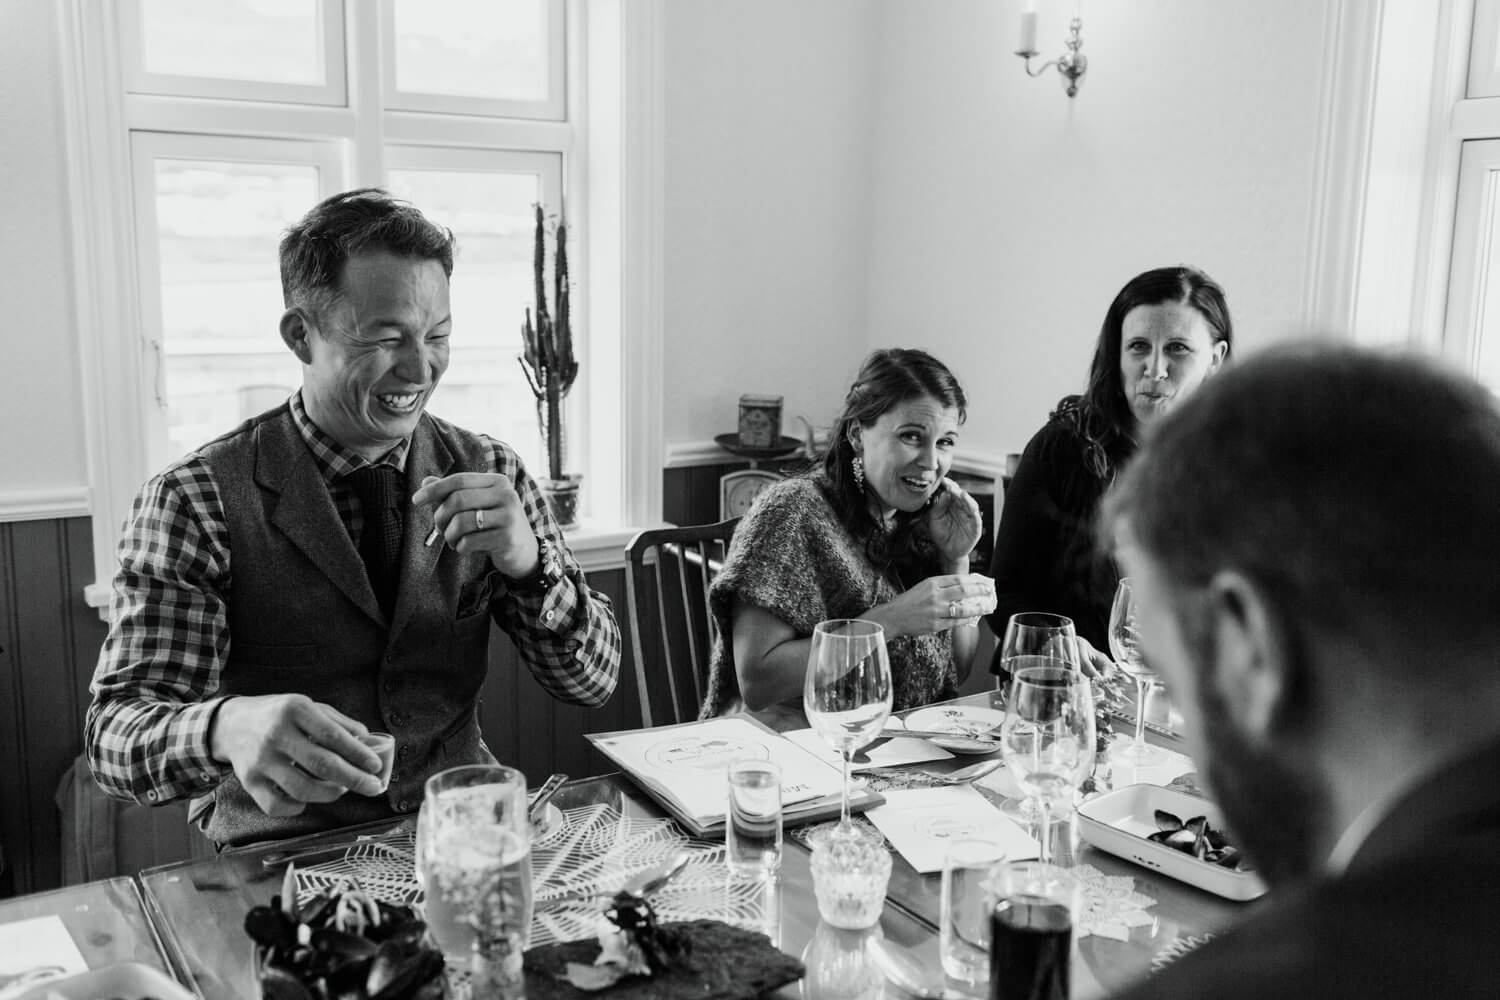 Black and white image of couple at dinner table, laughing and making face full of emotion.